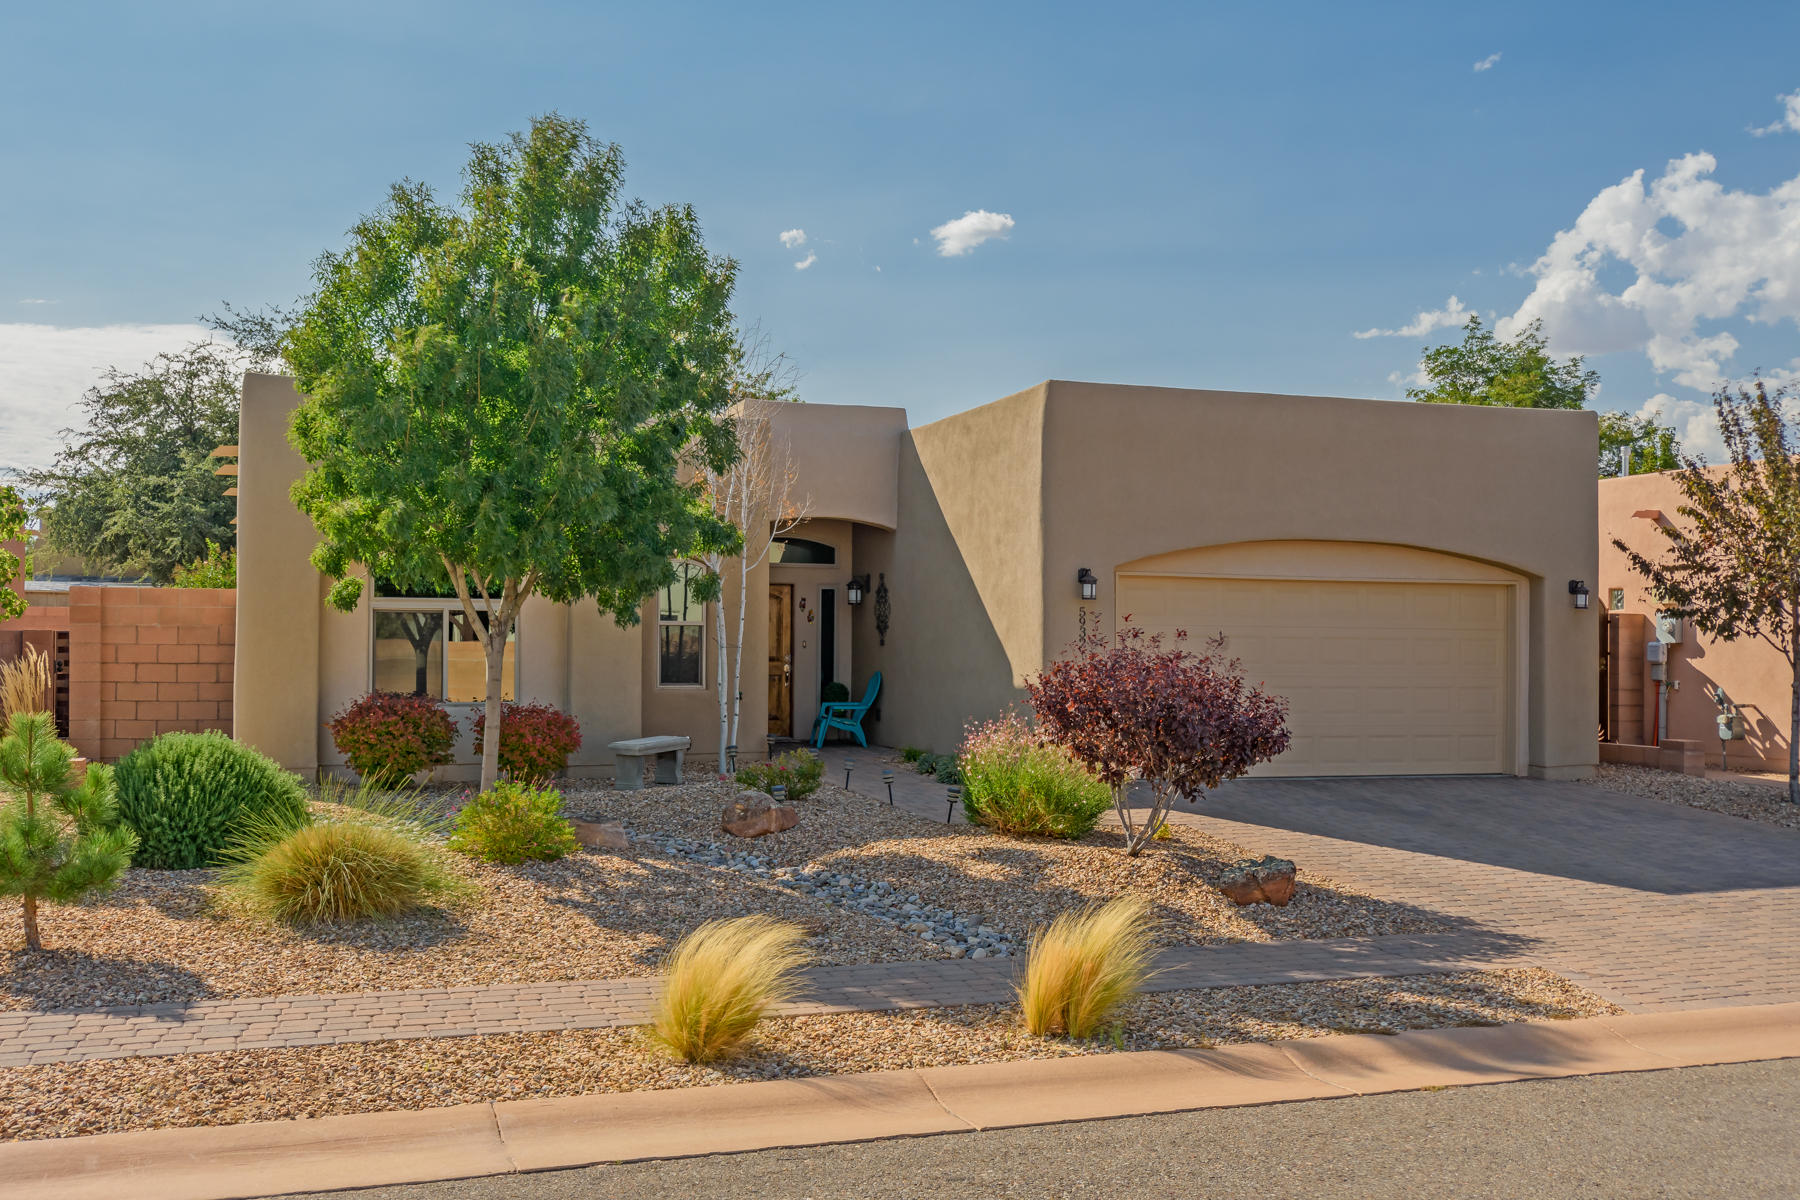 This stunning custom home, in a gated community on Albuquerque's westside will blow you away! Main living is great room concept with raised ceiling and gas fireplace with stone accents. The bedrooms are all separated. Wood floors and tile throughout main areas with knotty alder cabinets, granite, snack bar island and SS appliances. Master bath has door-less walk-in shower, whirlpool tub and access to the laundry room from master closet. Tons of storage with pantry, linen closets and shelving maximization in all closets. There is a water softener, custom blinds, built in speakers, professionally landscaped backyard with large patio, wired for TV on the covered patio. Insulation package includes R-49 in ceiling with blown-in fiberglass exterior 2x6 walls, finished garage